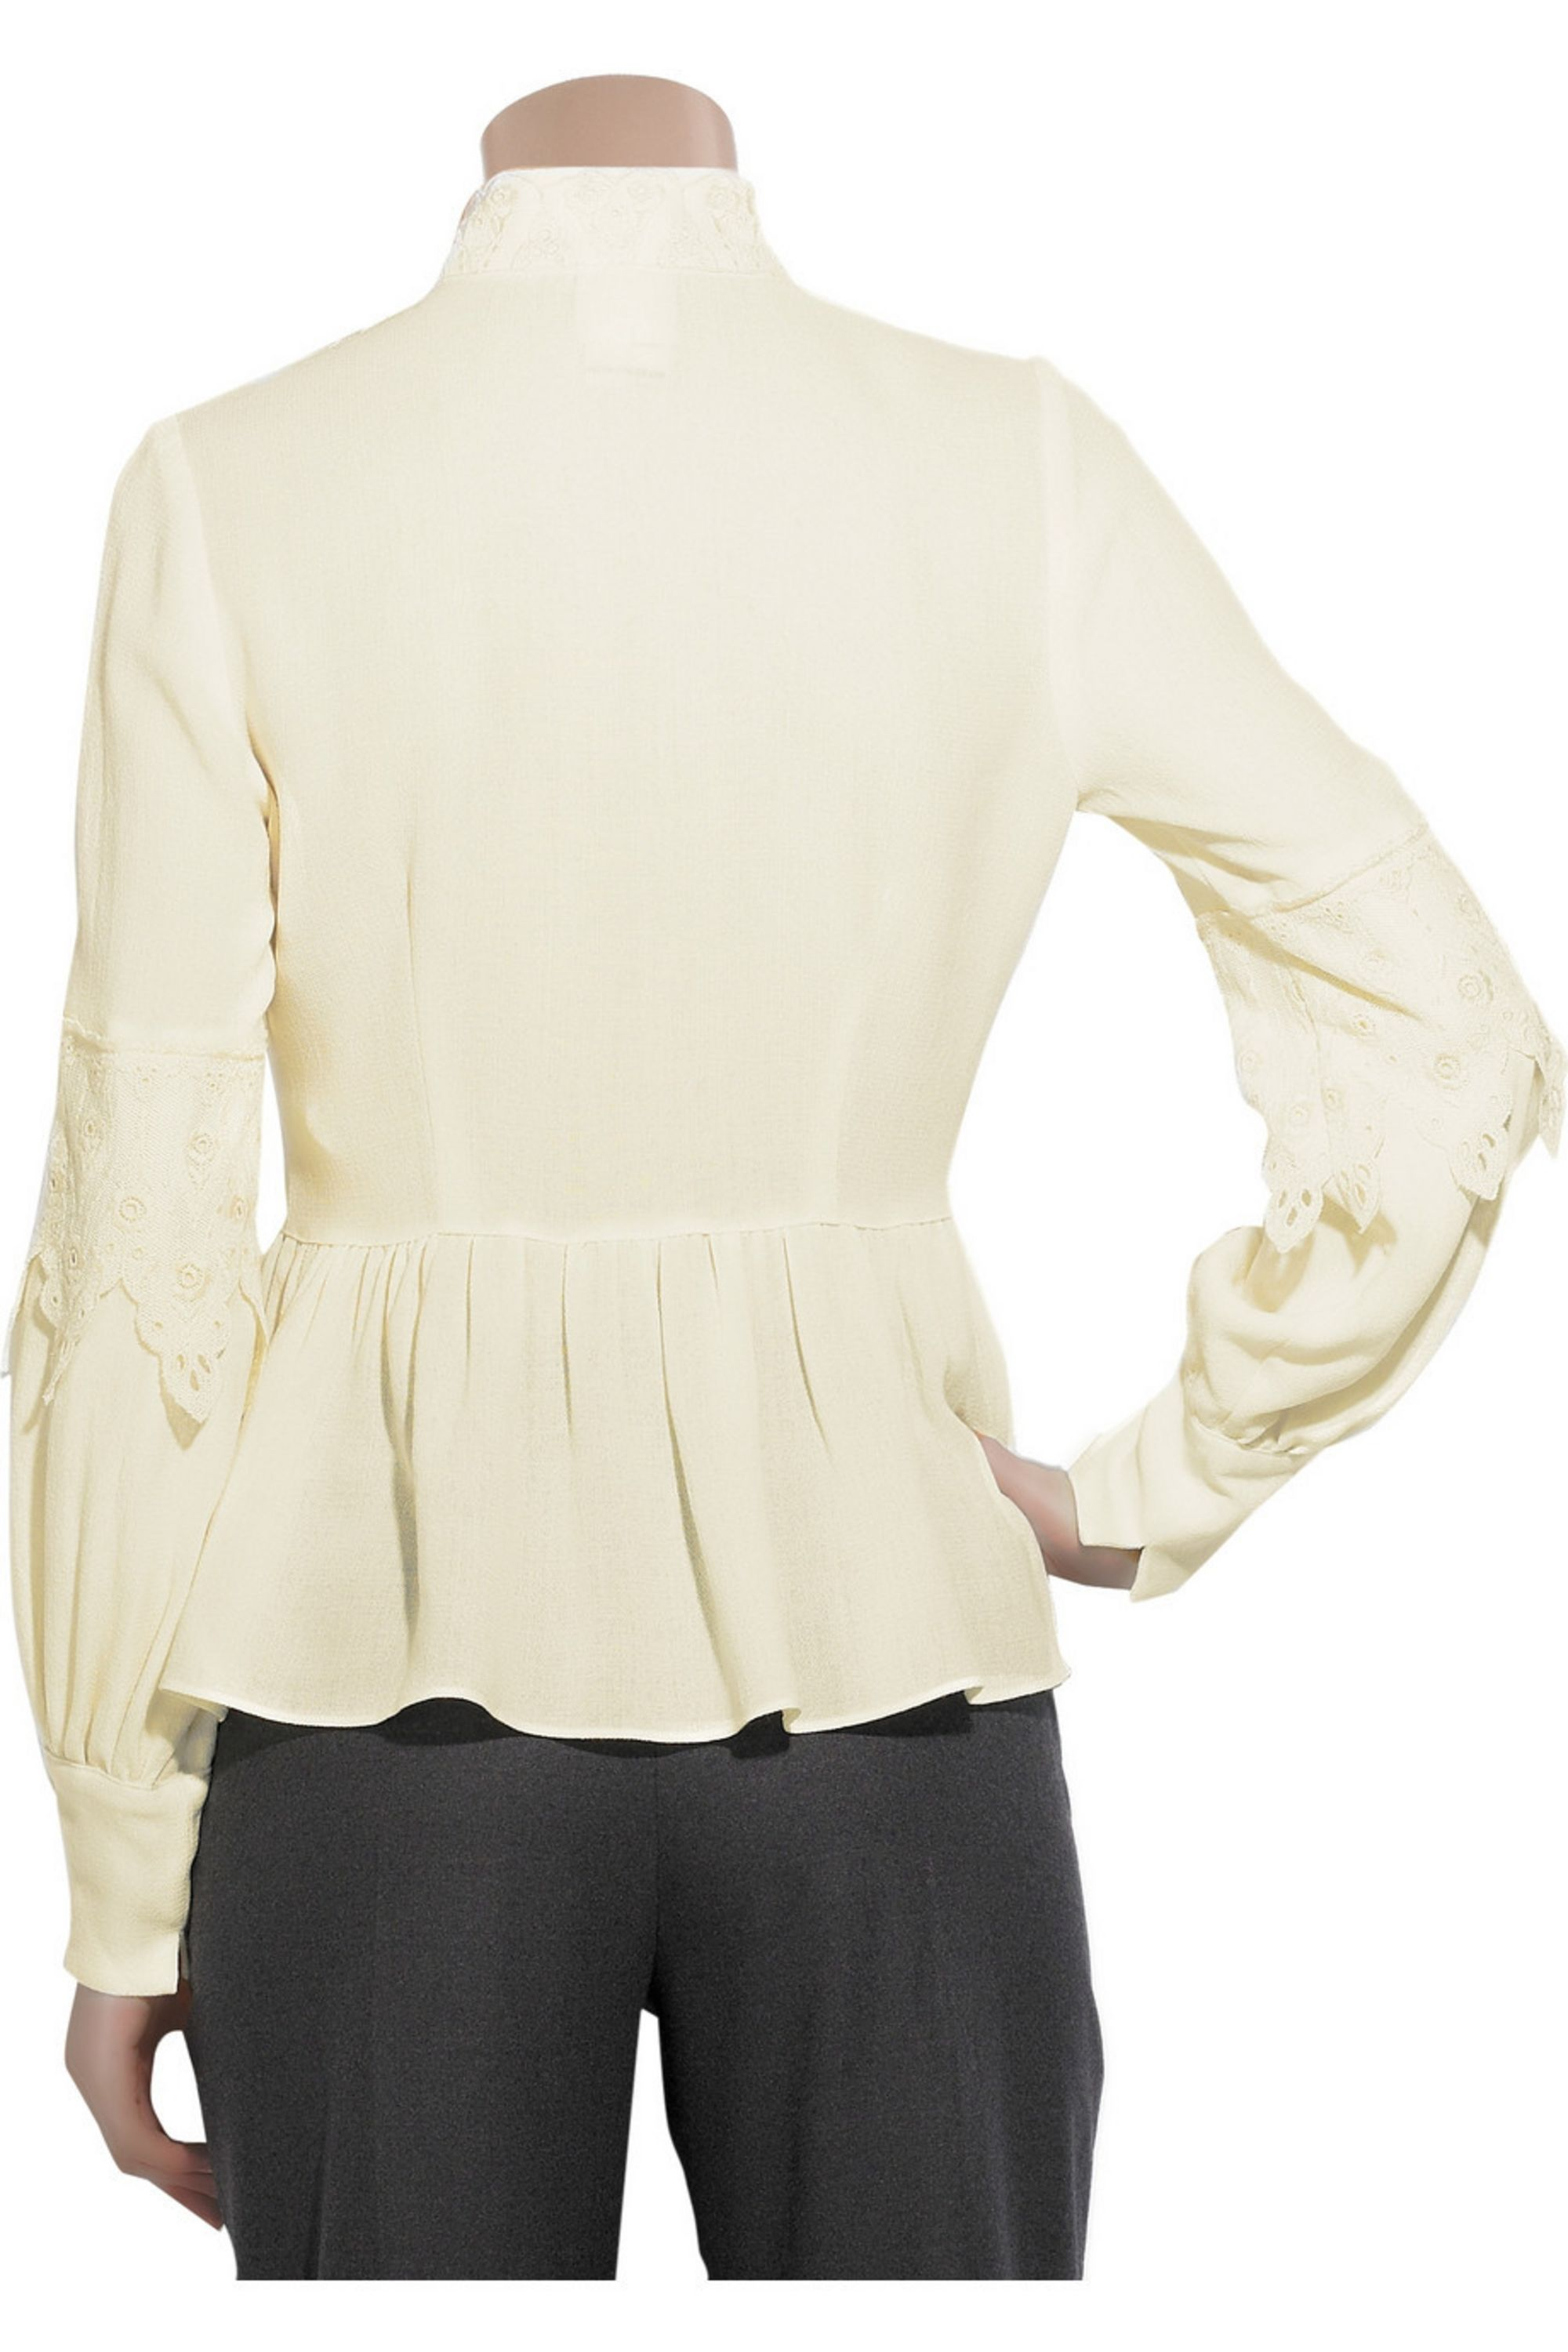 Anna Sui Wool-blend lace blouse